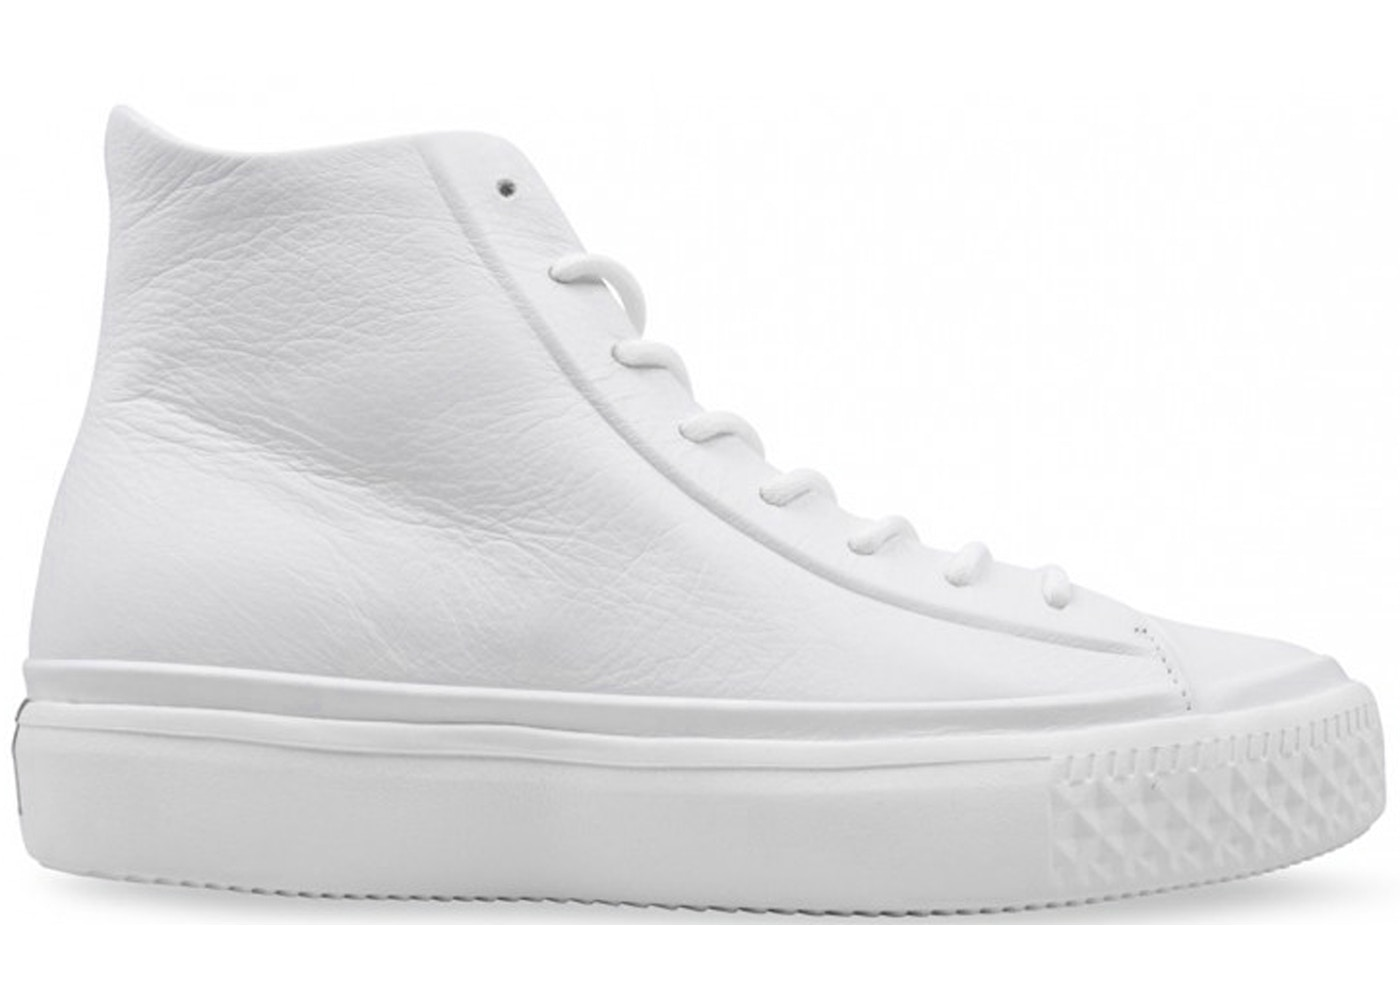 bea2bd788b3e Converse Chuck Taylor All-Star Modern Lux High White Leather - CN157199C